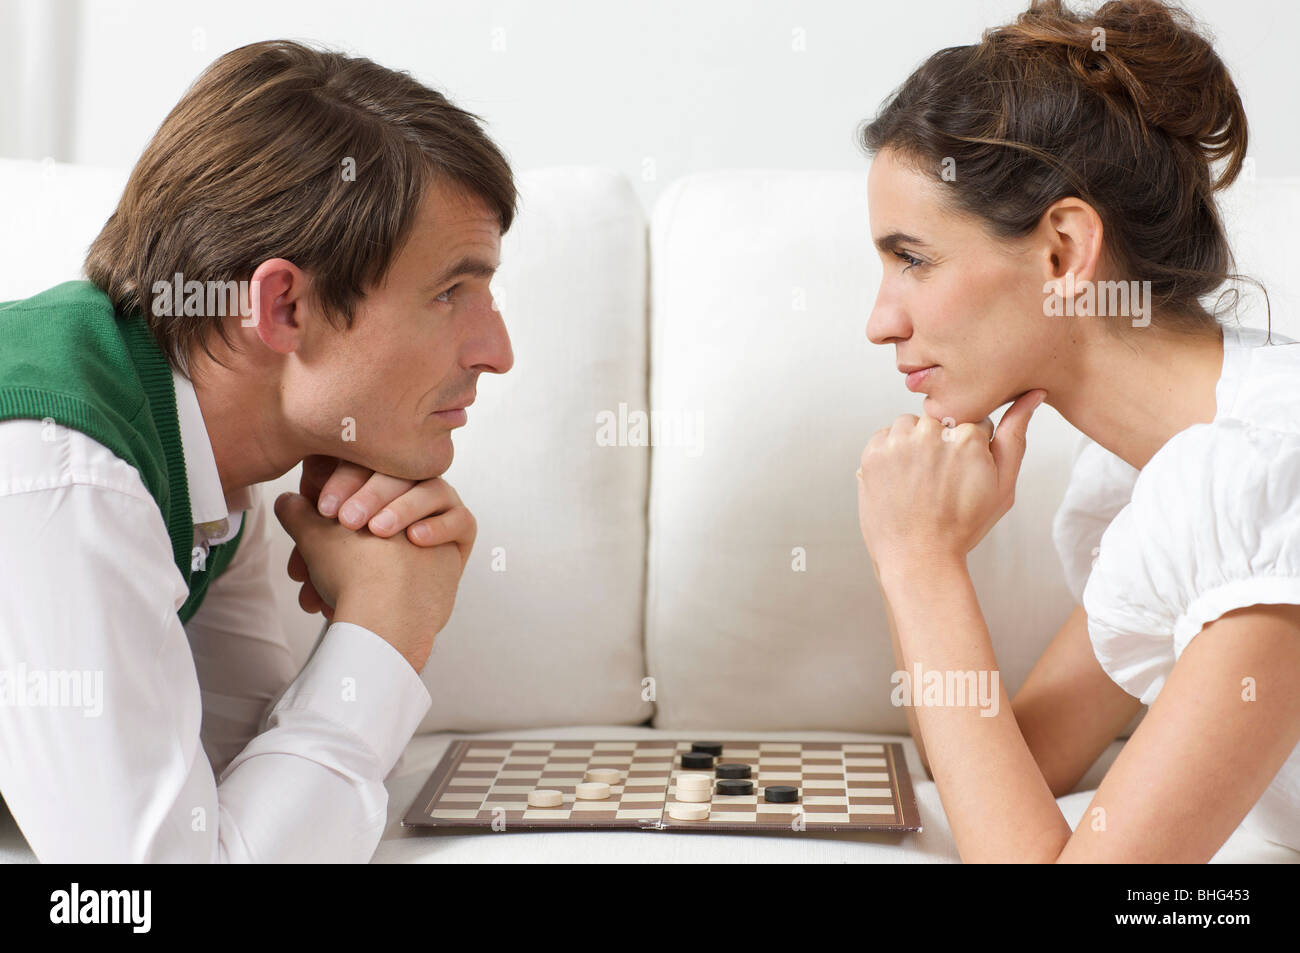 not a game for all lovers - Stock Image